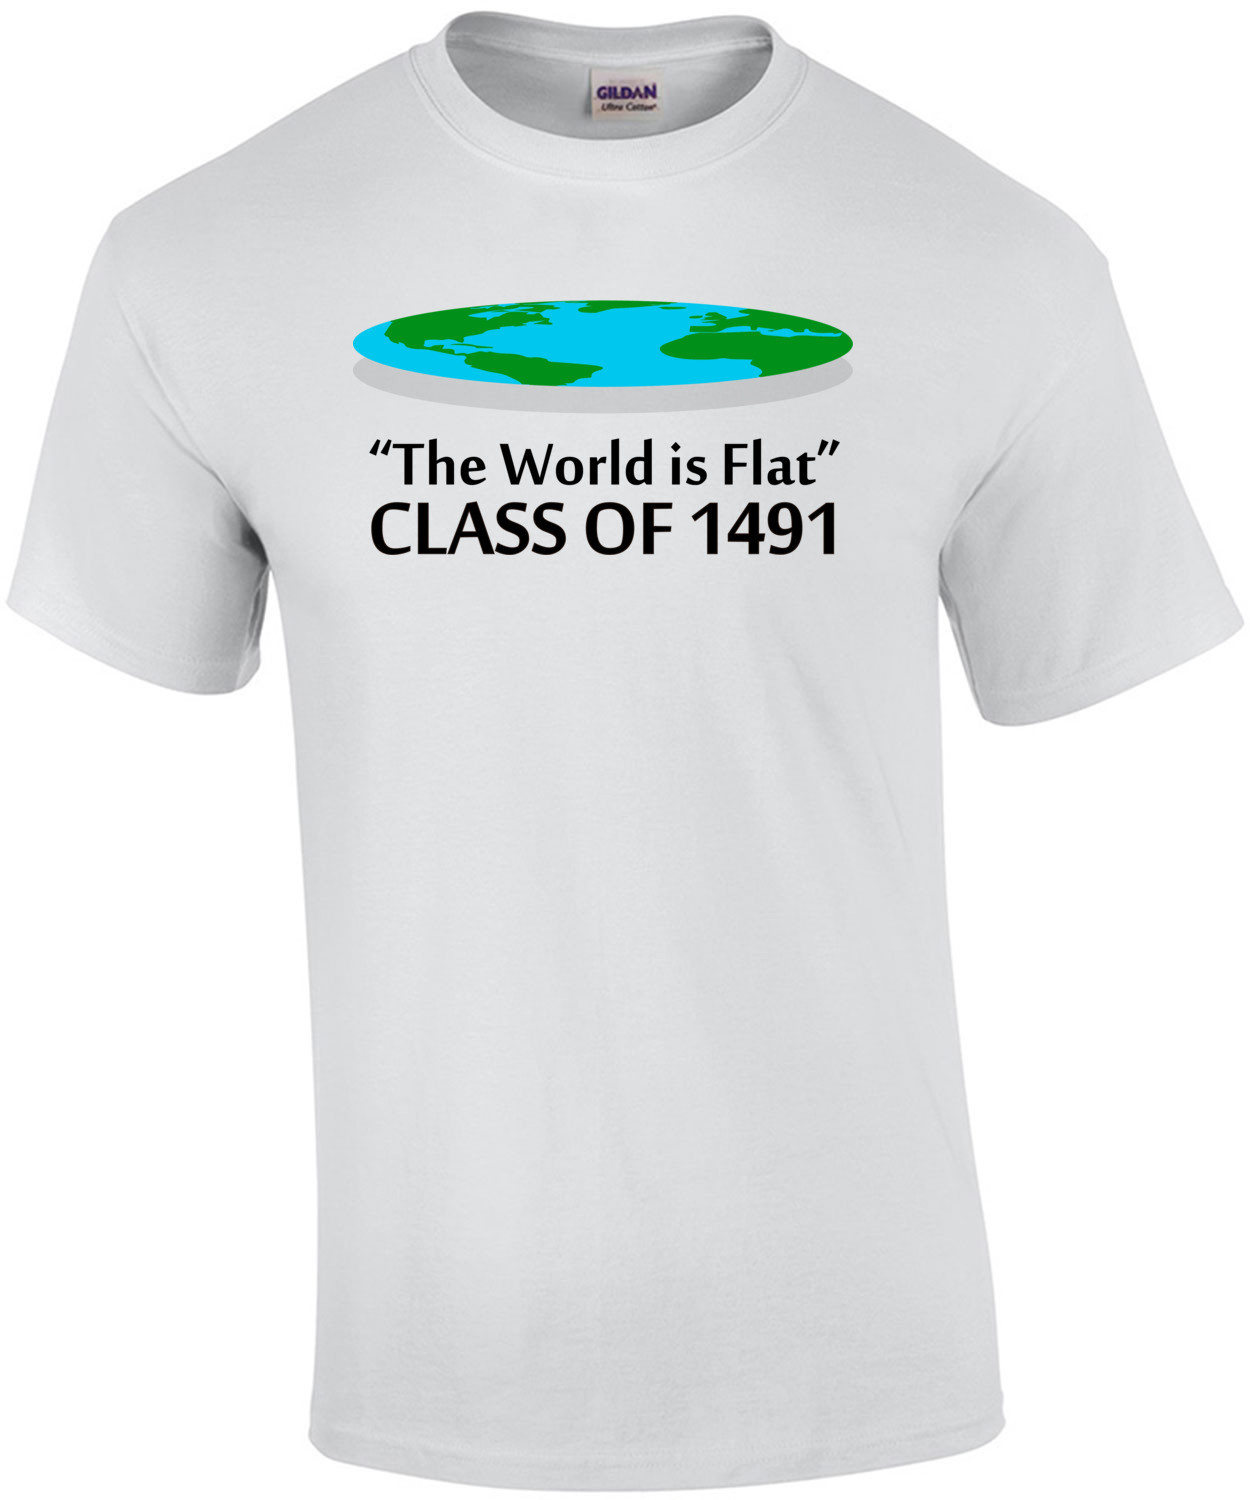 The World is Flat - Class of 1491 - Flat Earther T-Shirt